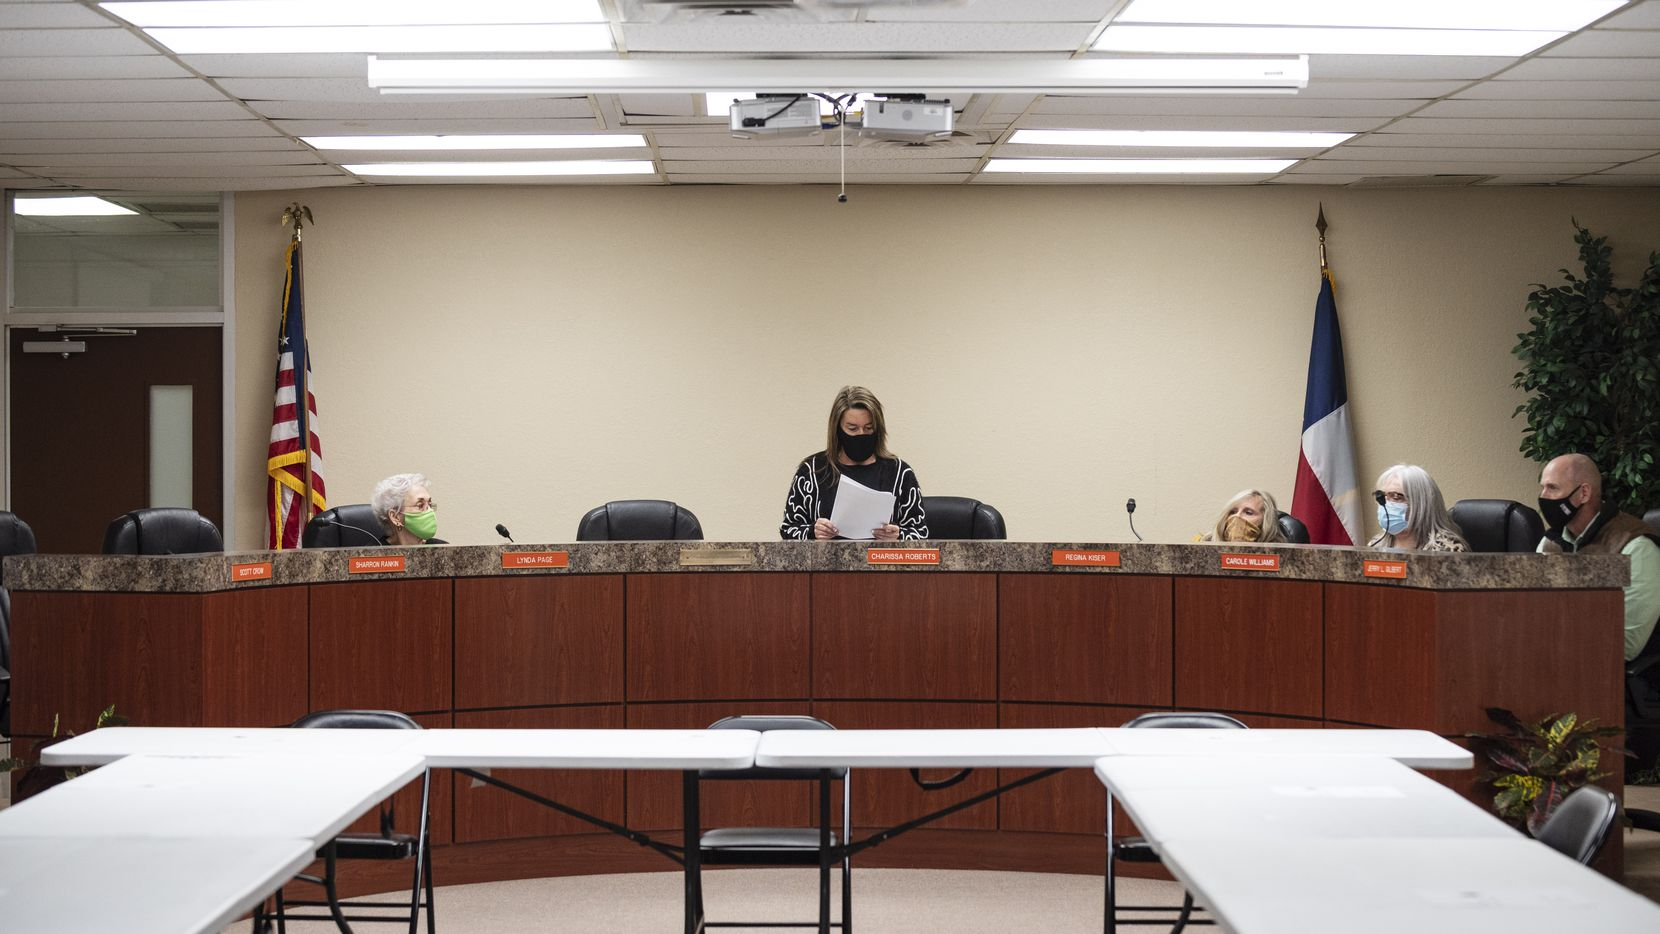 A Kemp ISD board president Charissa Roberts, center, prepares to conduct a board meeting at the district's admin building in Kemp, on Monday, Dec. 14, 2020. A Texas Education Agency investigation revealed a toxic culture within the Kemp ISD board. The dysfunction often resulted in using racist slurs by board members, threatening staff and engaging in contract procurement violations.